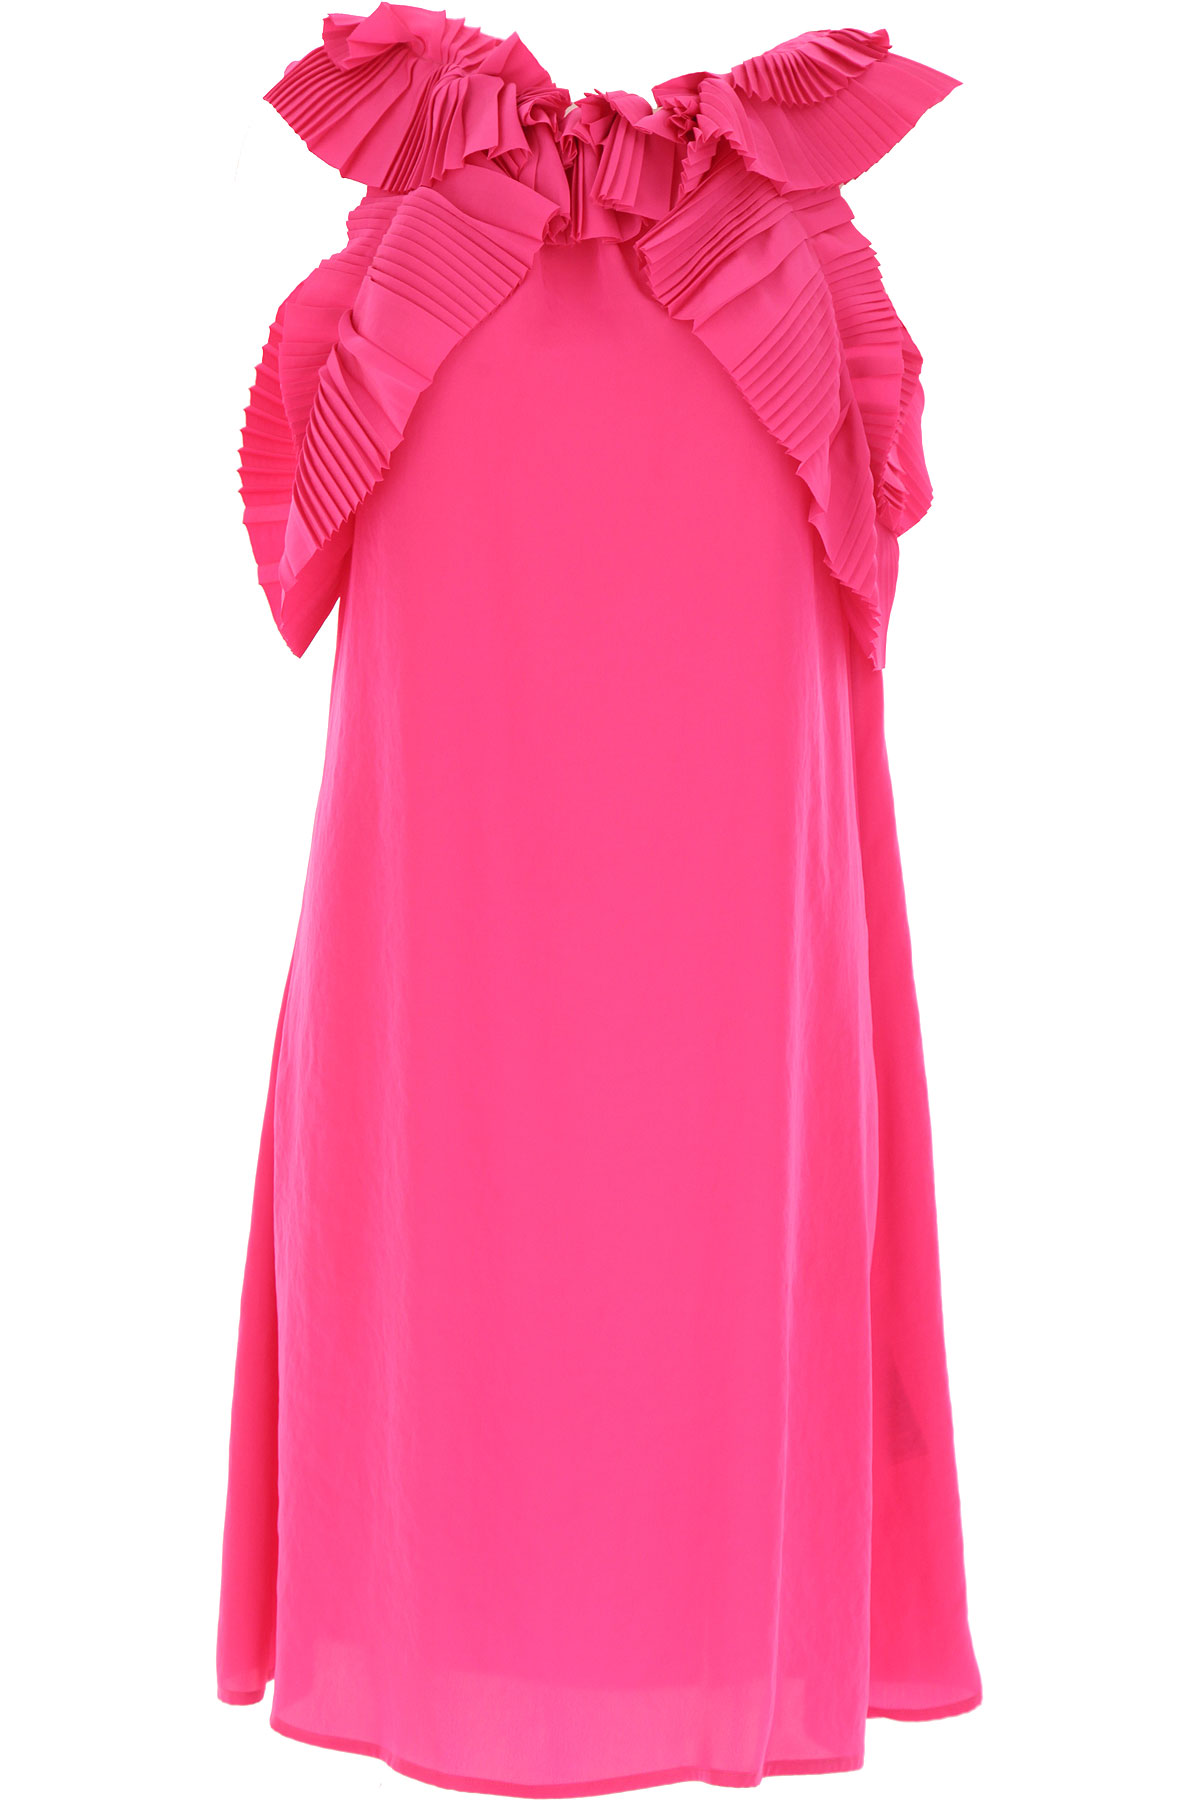 P.A.R.O.S.H. Dress for Women, Evening Cocktail Party On Sale, Hot Pink, polyester, 2019, 4 6